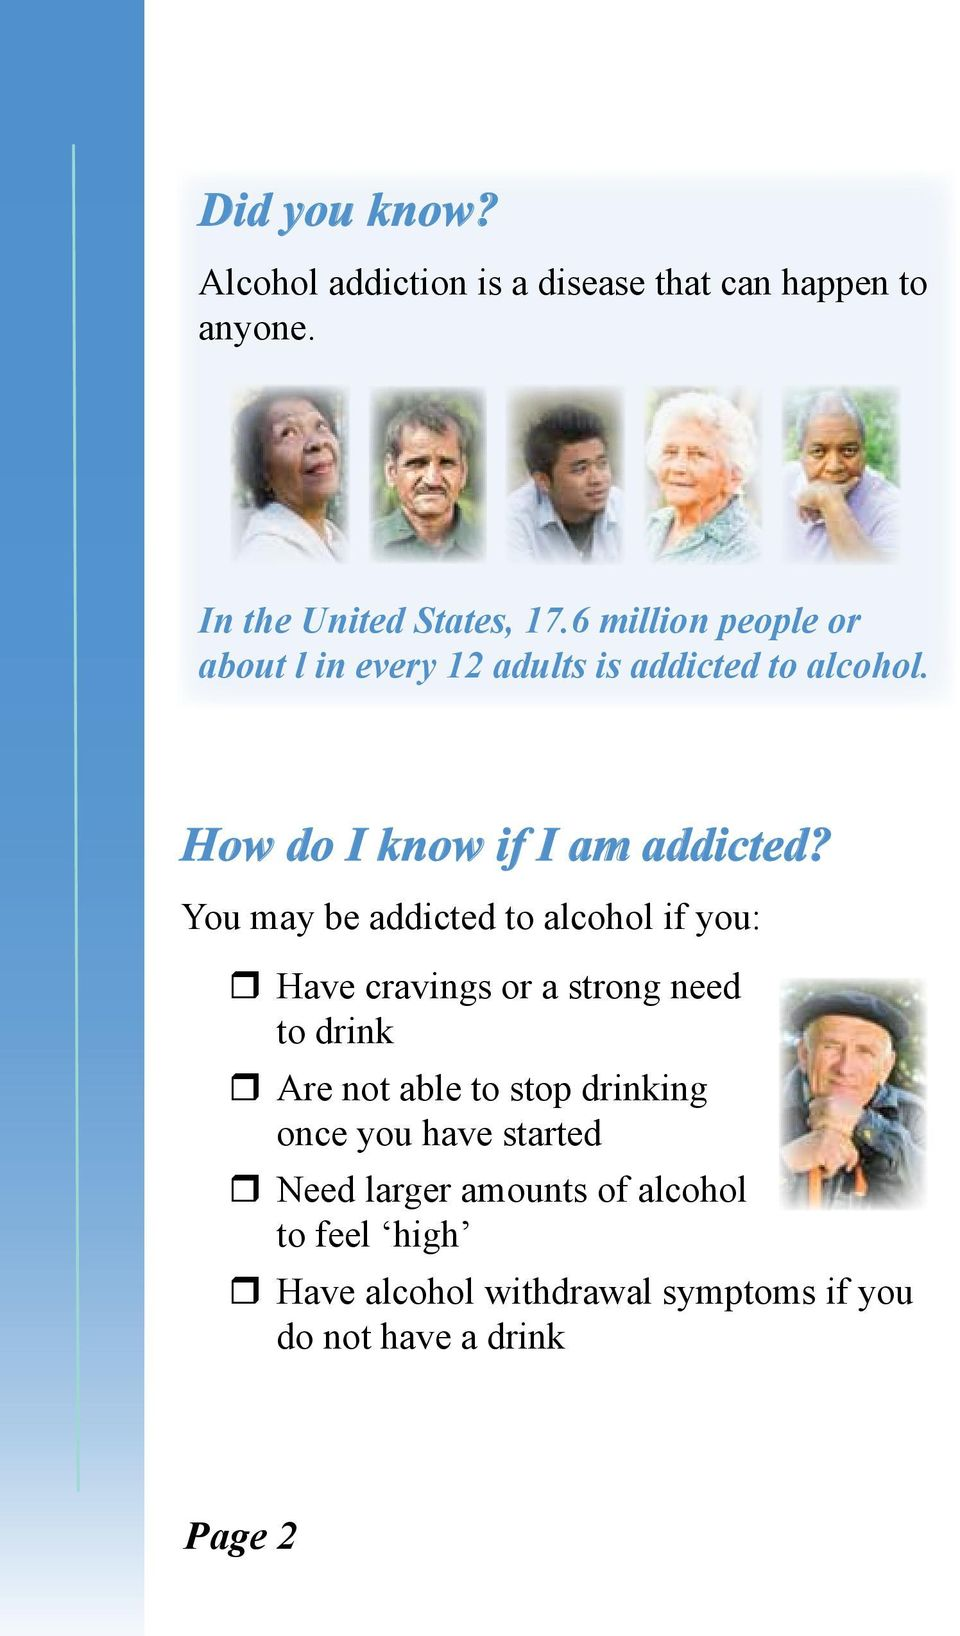 You may be addicted to alcohol if you: Have cravings or a strong need to drink Are not able to stop drinking